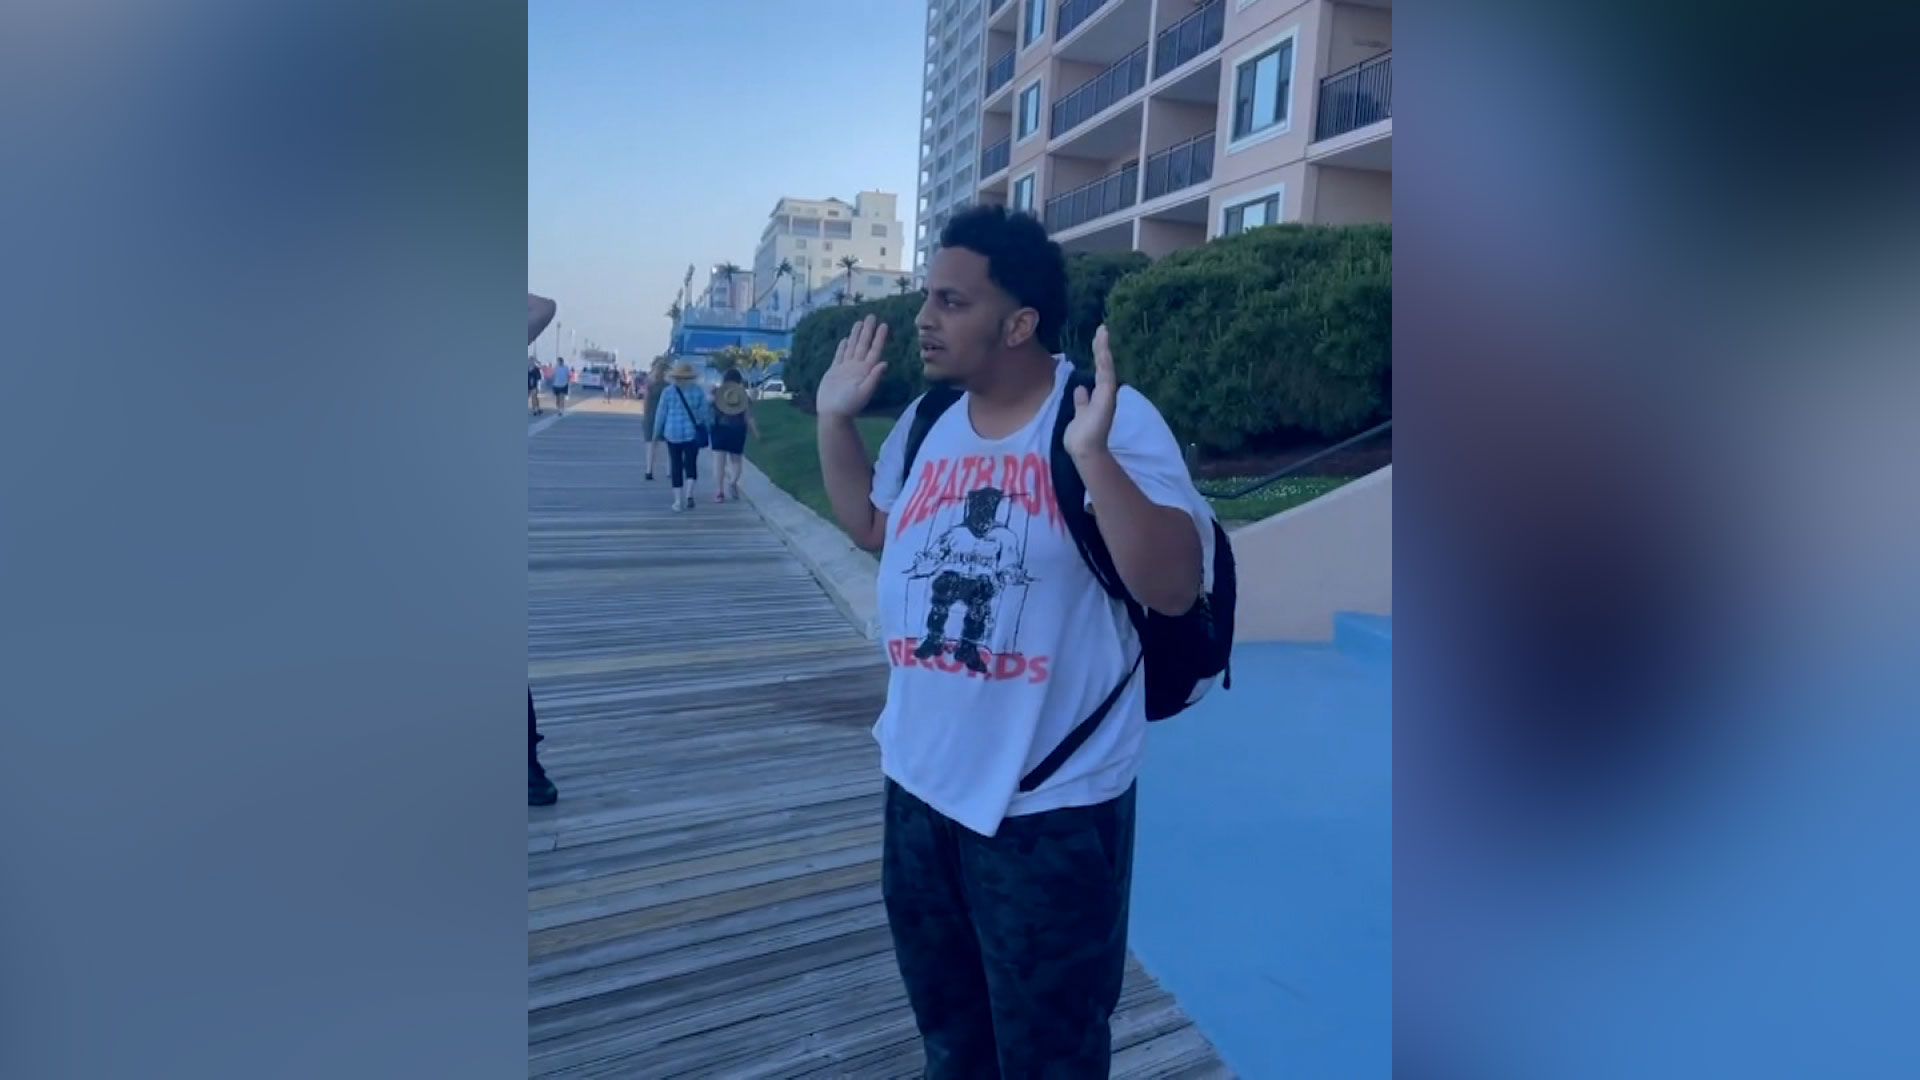 Mother of teen tased by Ocean City police says she felt 'helpless' watching video of her son's arrest